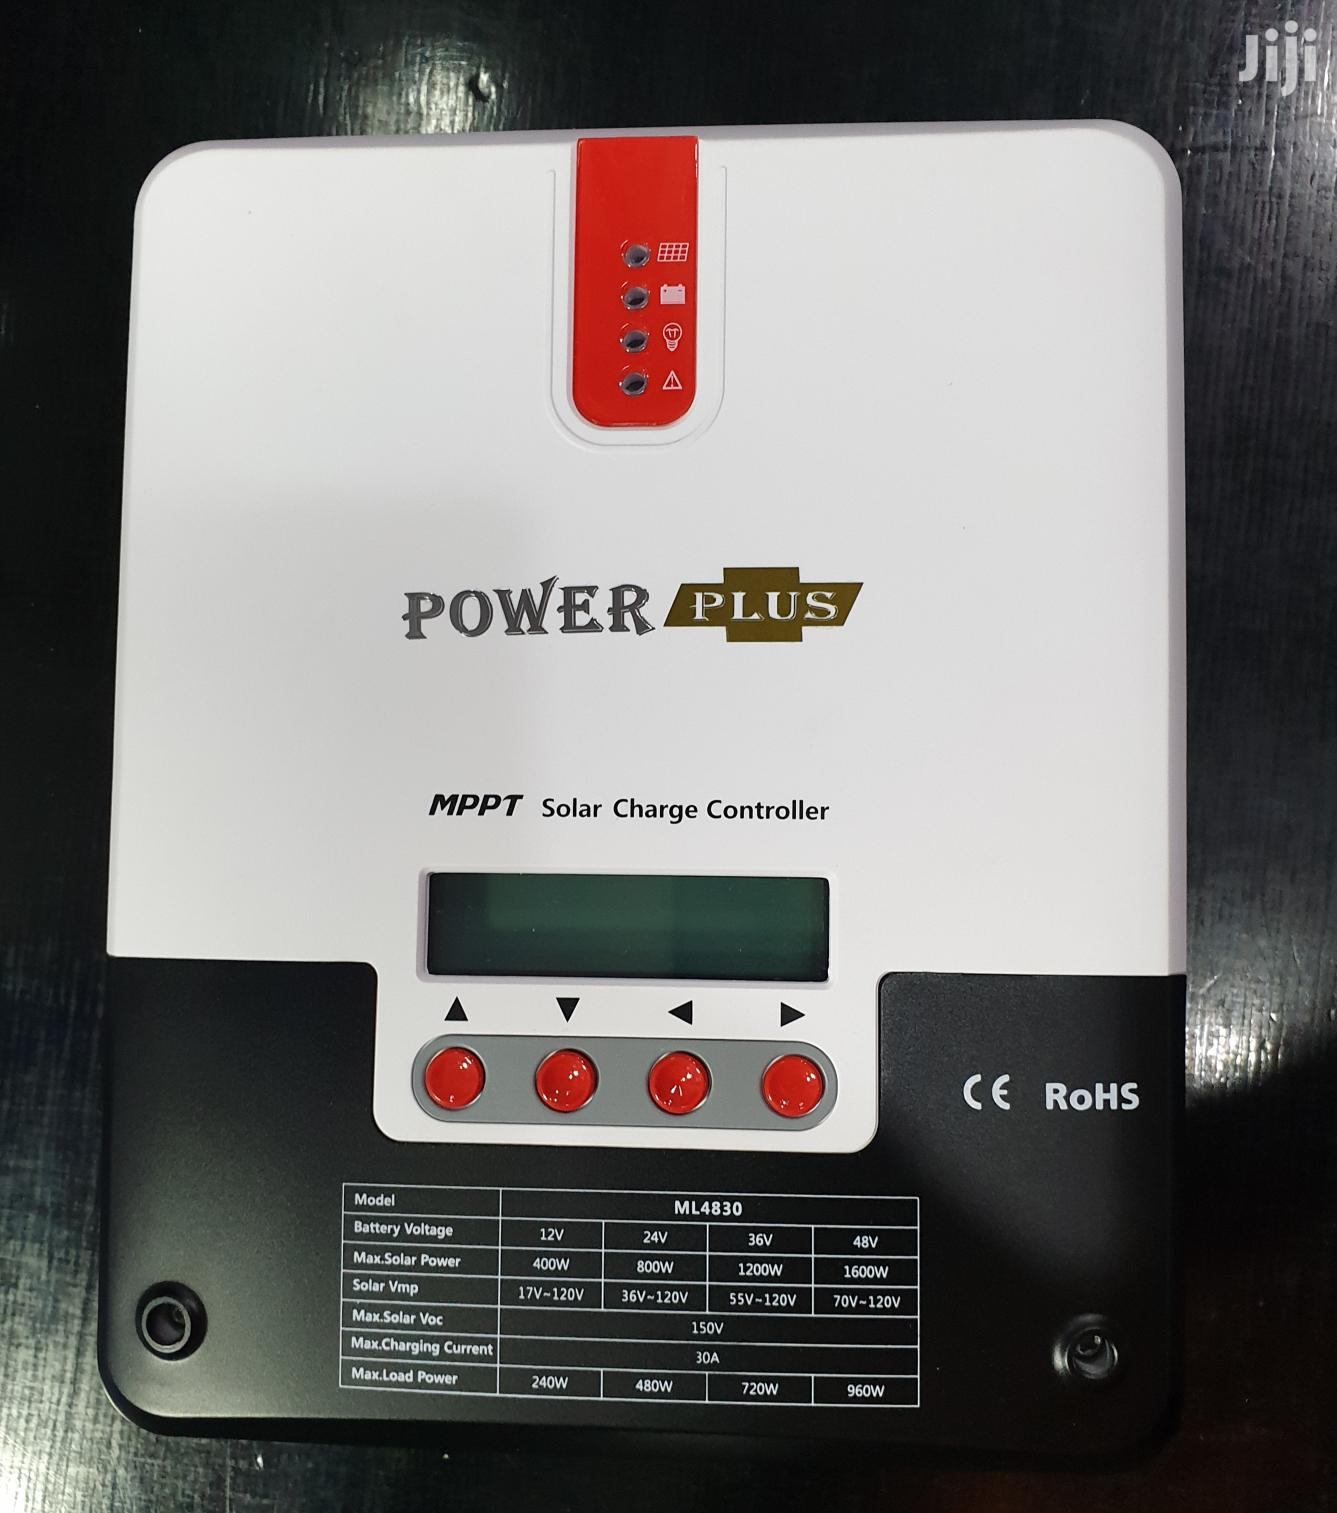 30A 48V Powerplus MPPT Charger Controller